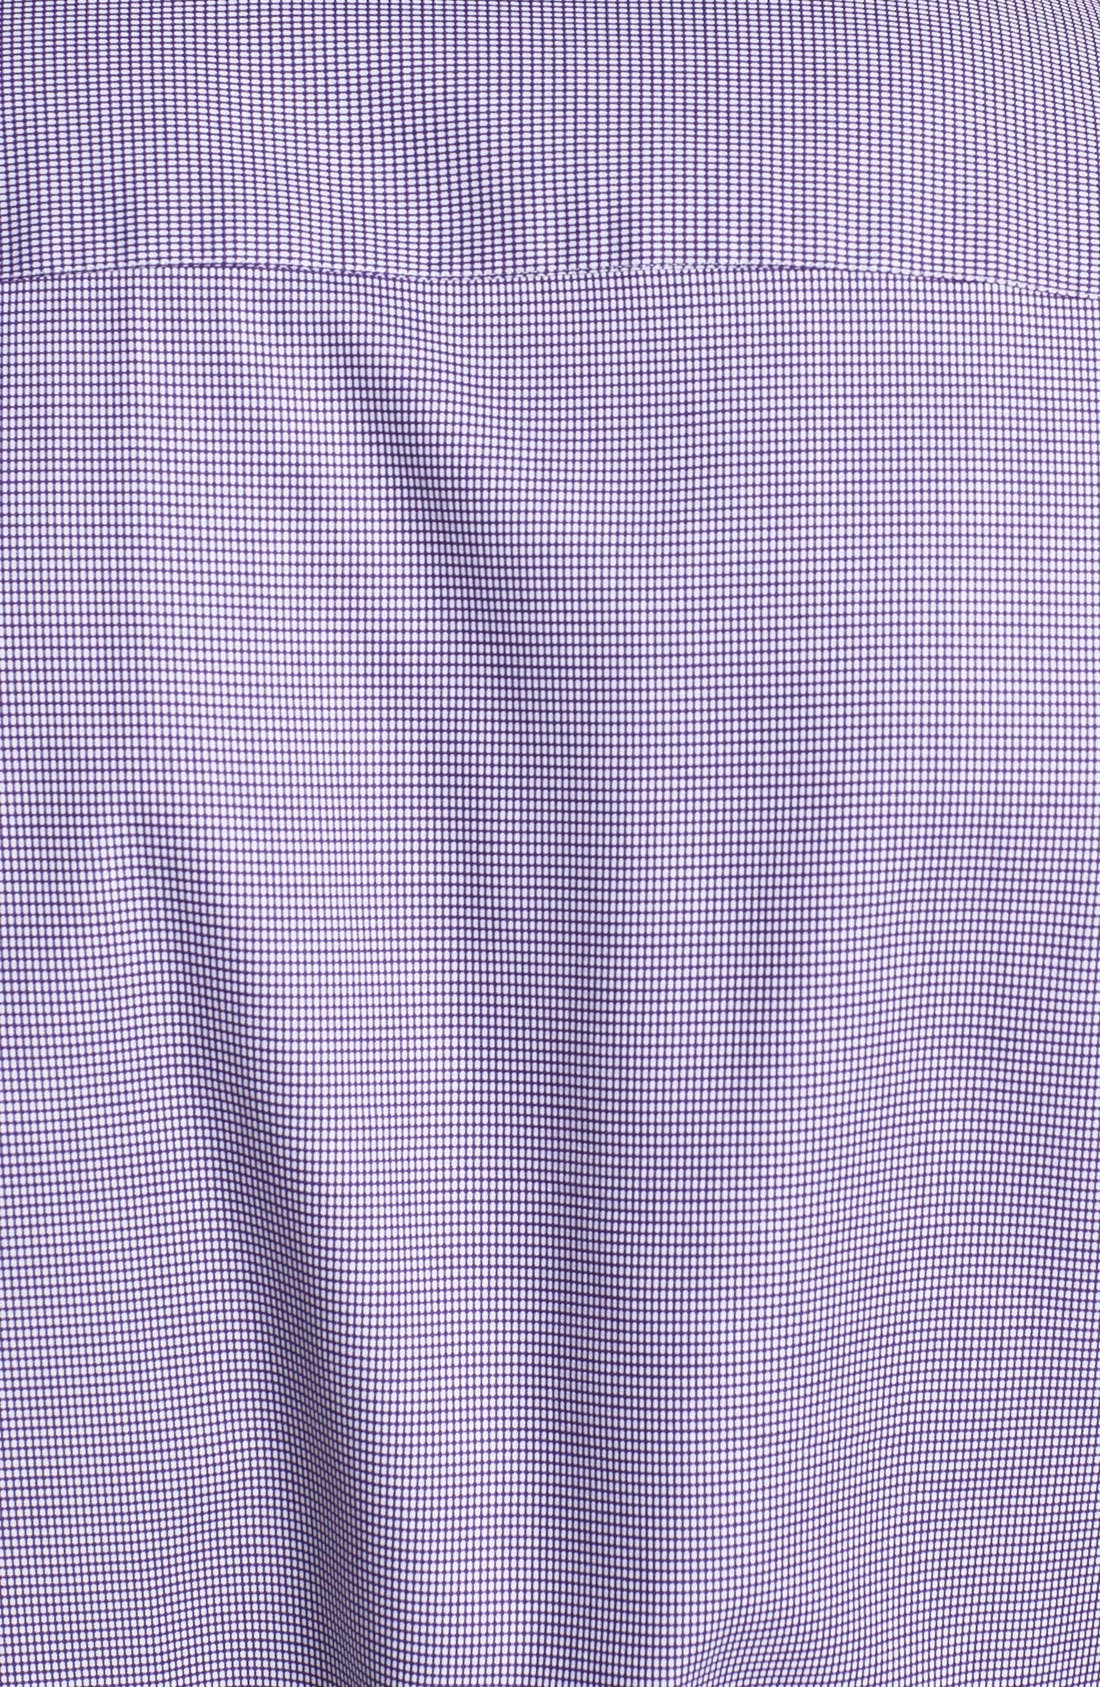 Alternate Image 3  - Z Zegna Jacquard Woven Shirt